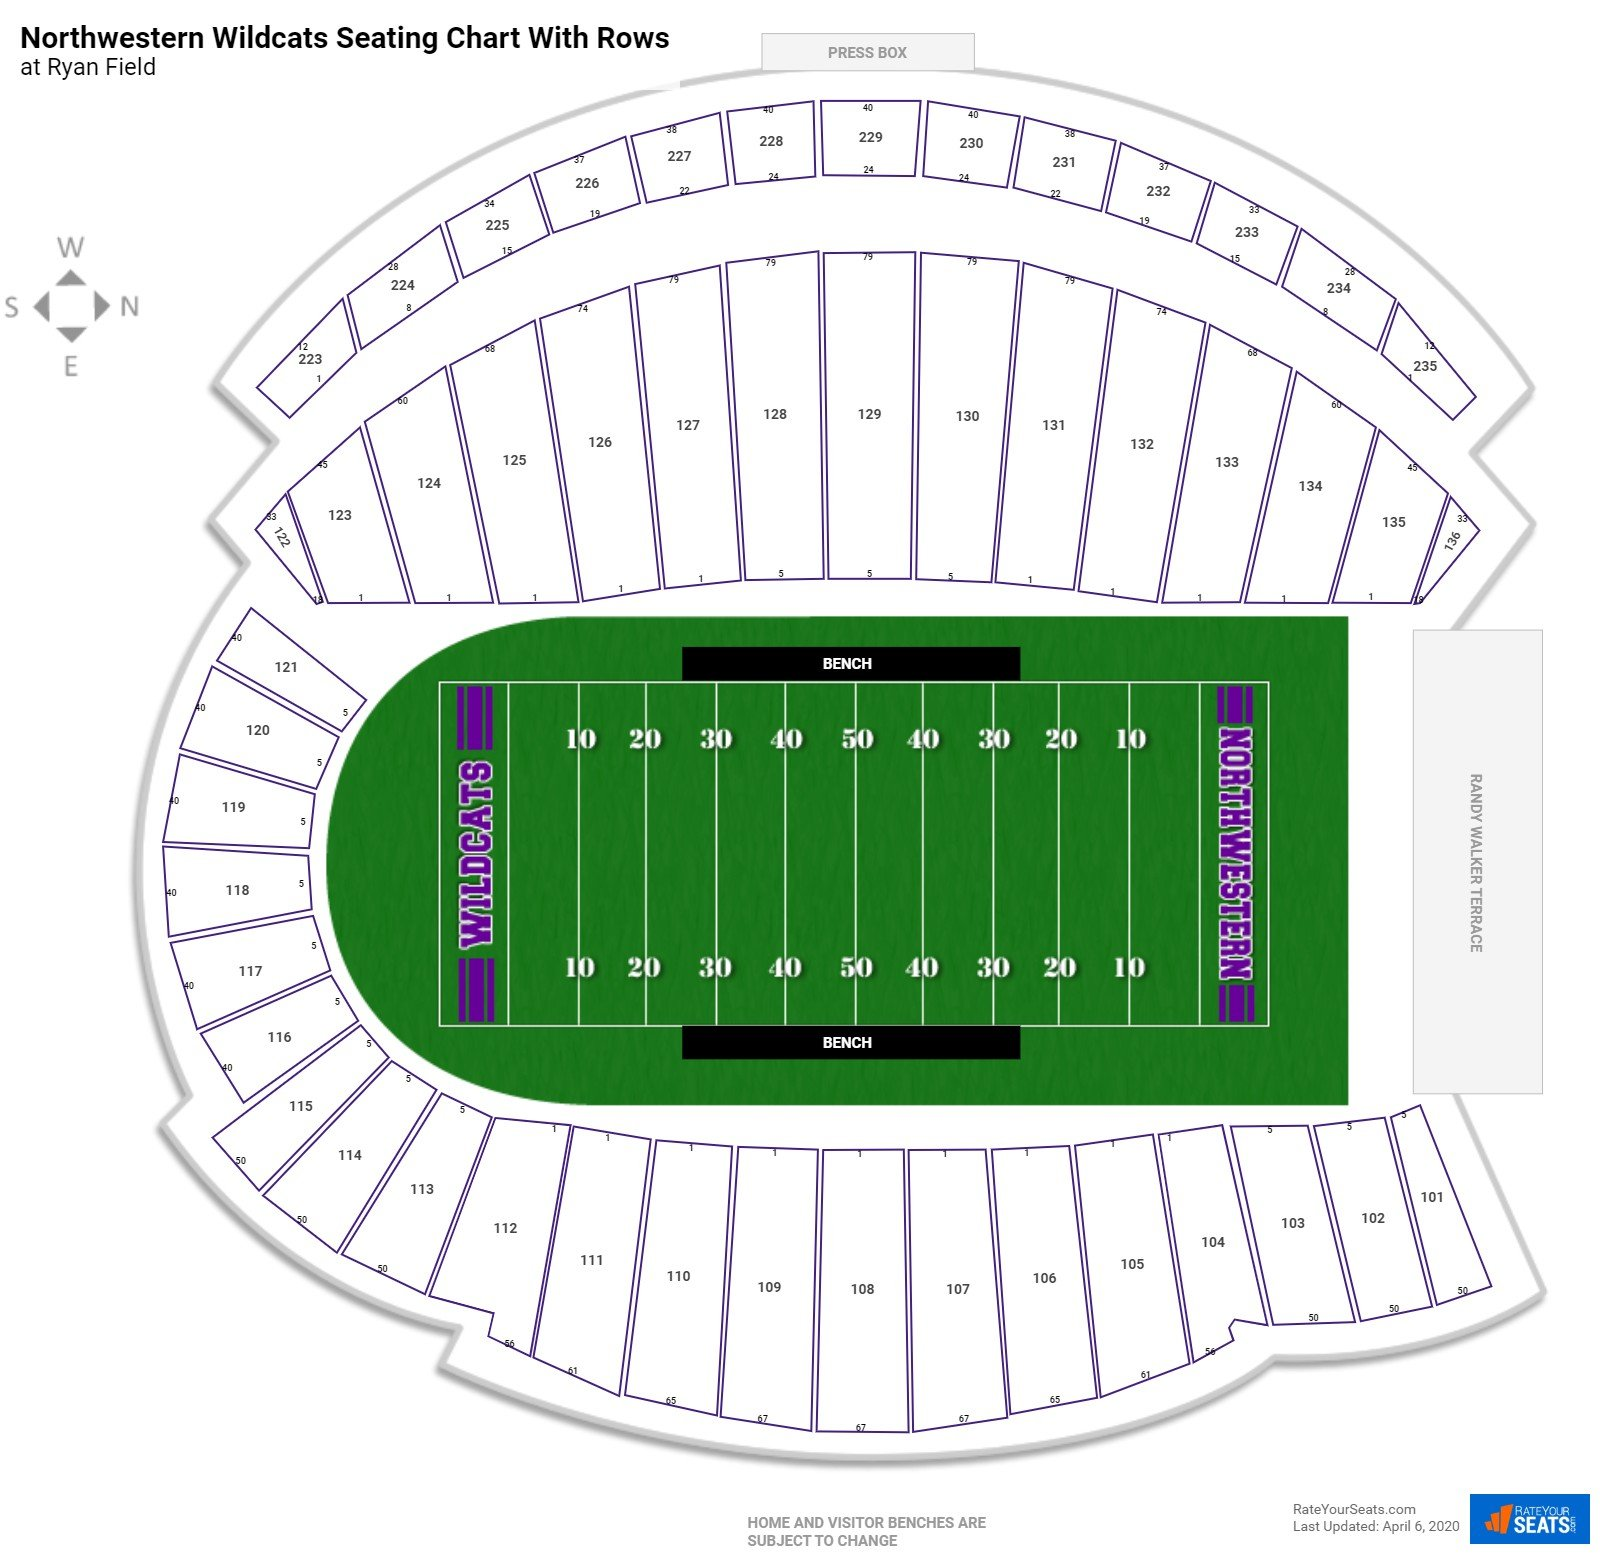 Ryan Field seating chart with rows